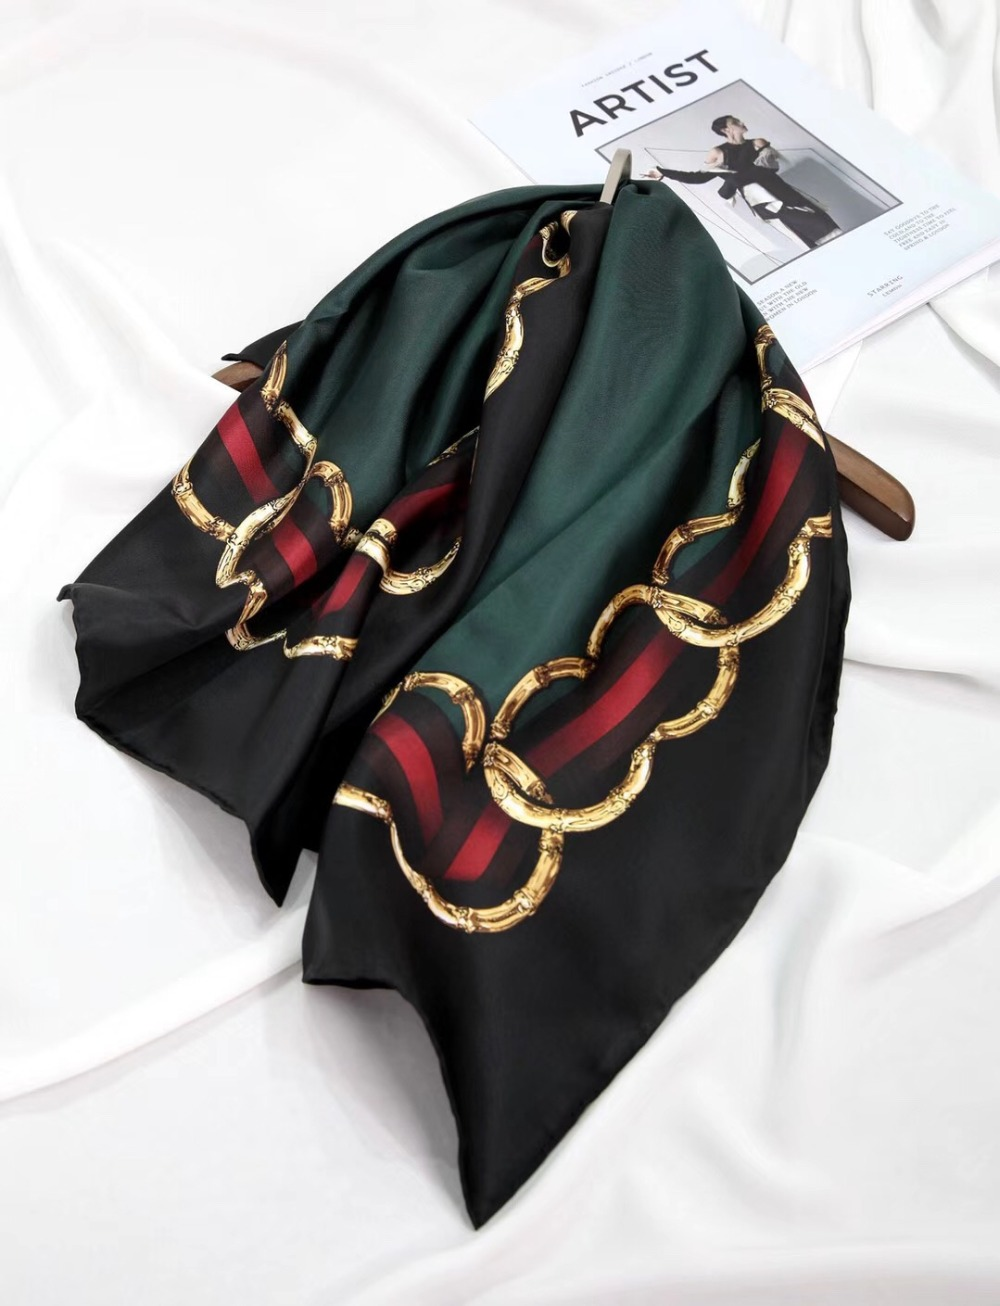 2019 New Arrival Fashion Elegant Brand 100% Silk Scarf 90*90 Cm Square Shawl Hand Made Roll Wrap For Women Lady Free Shipping